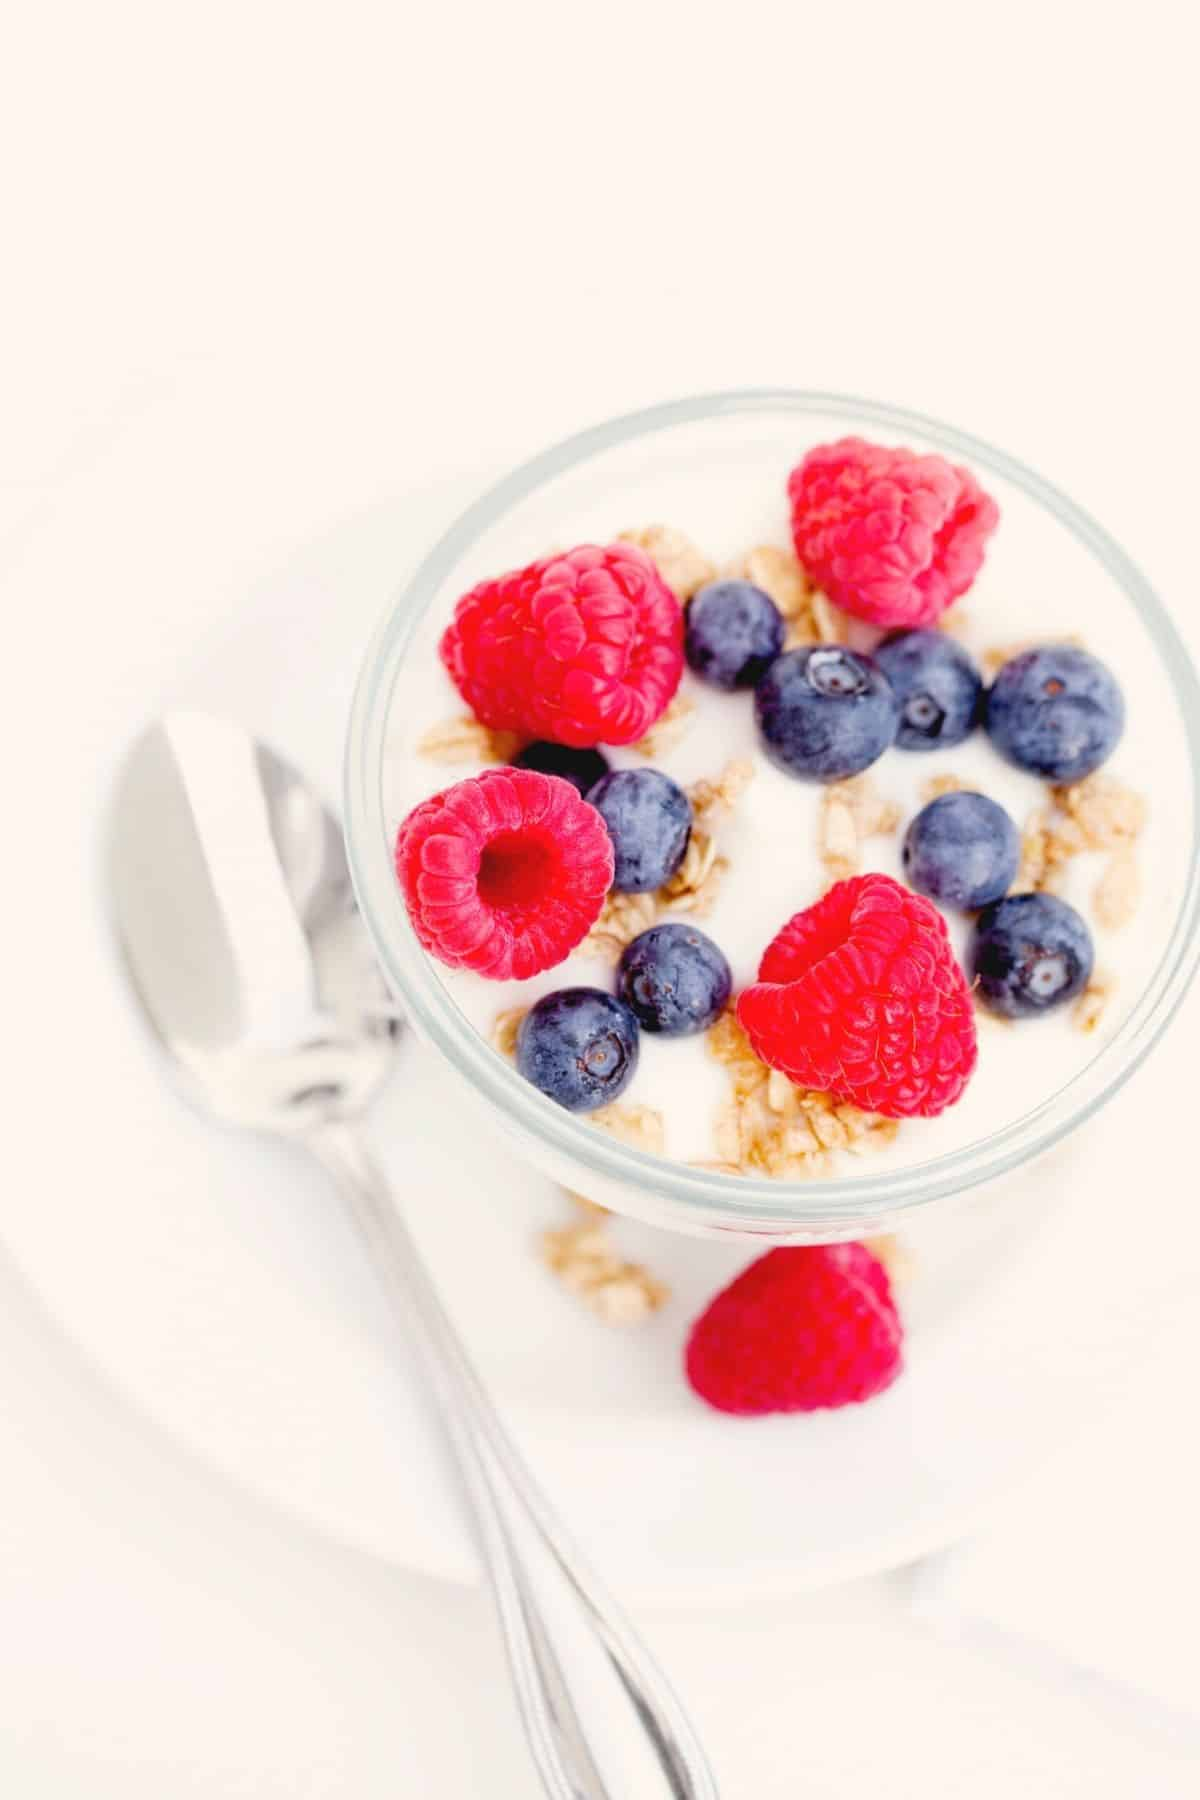 coconut yogurt topped with berries